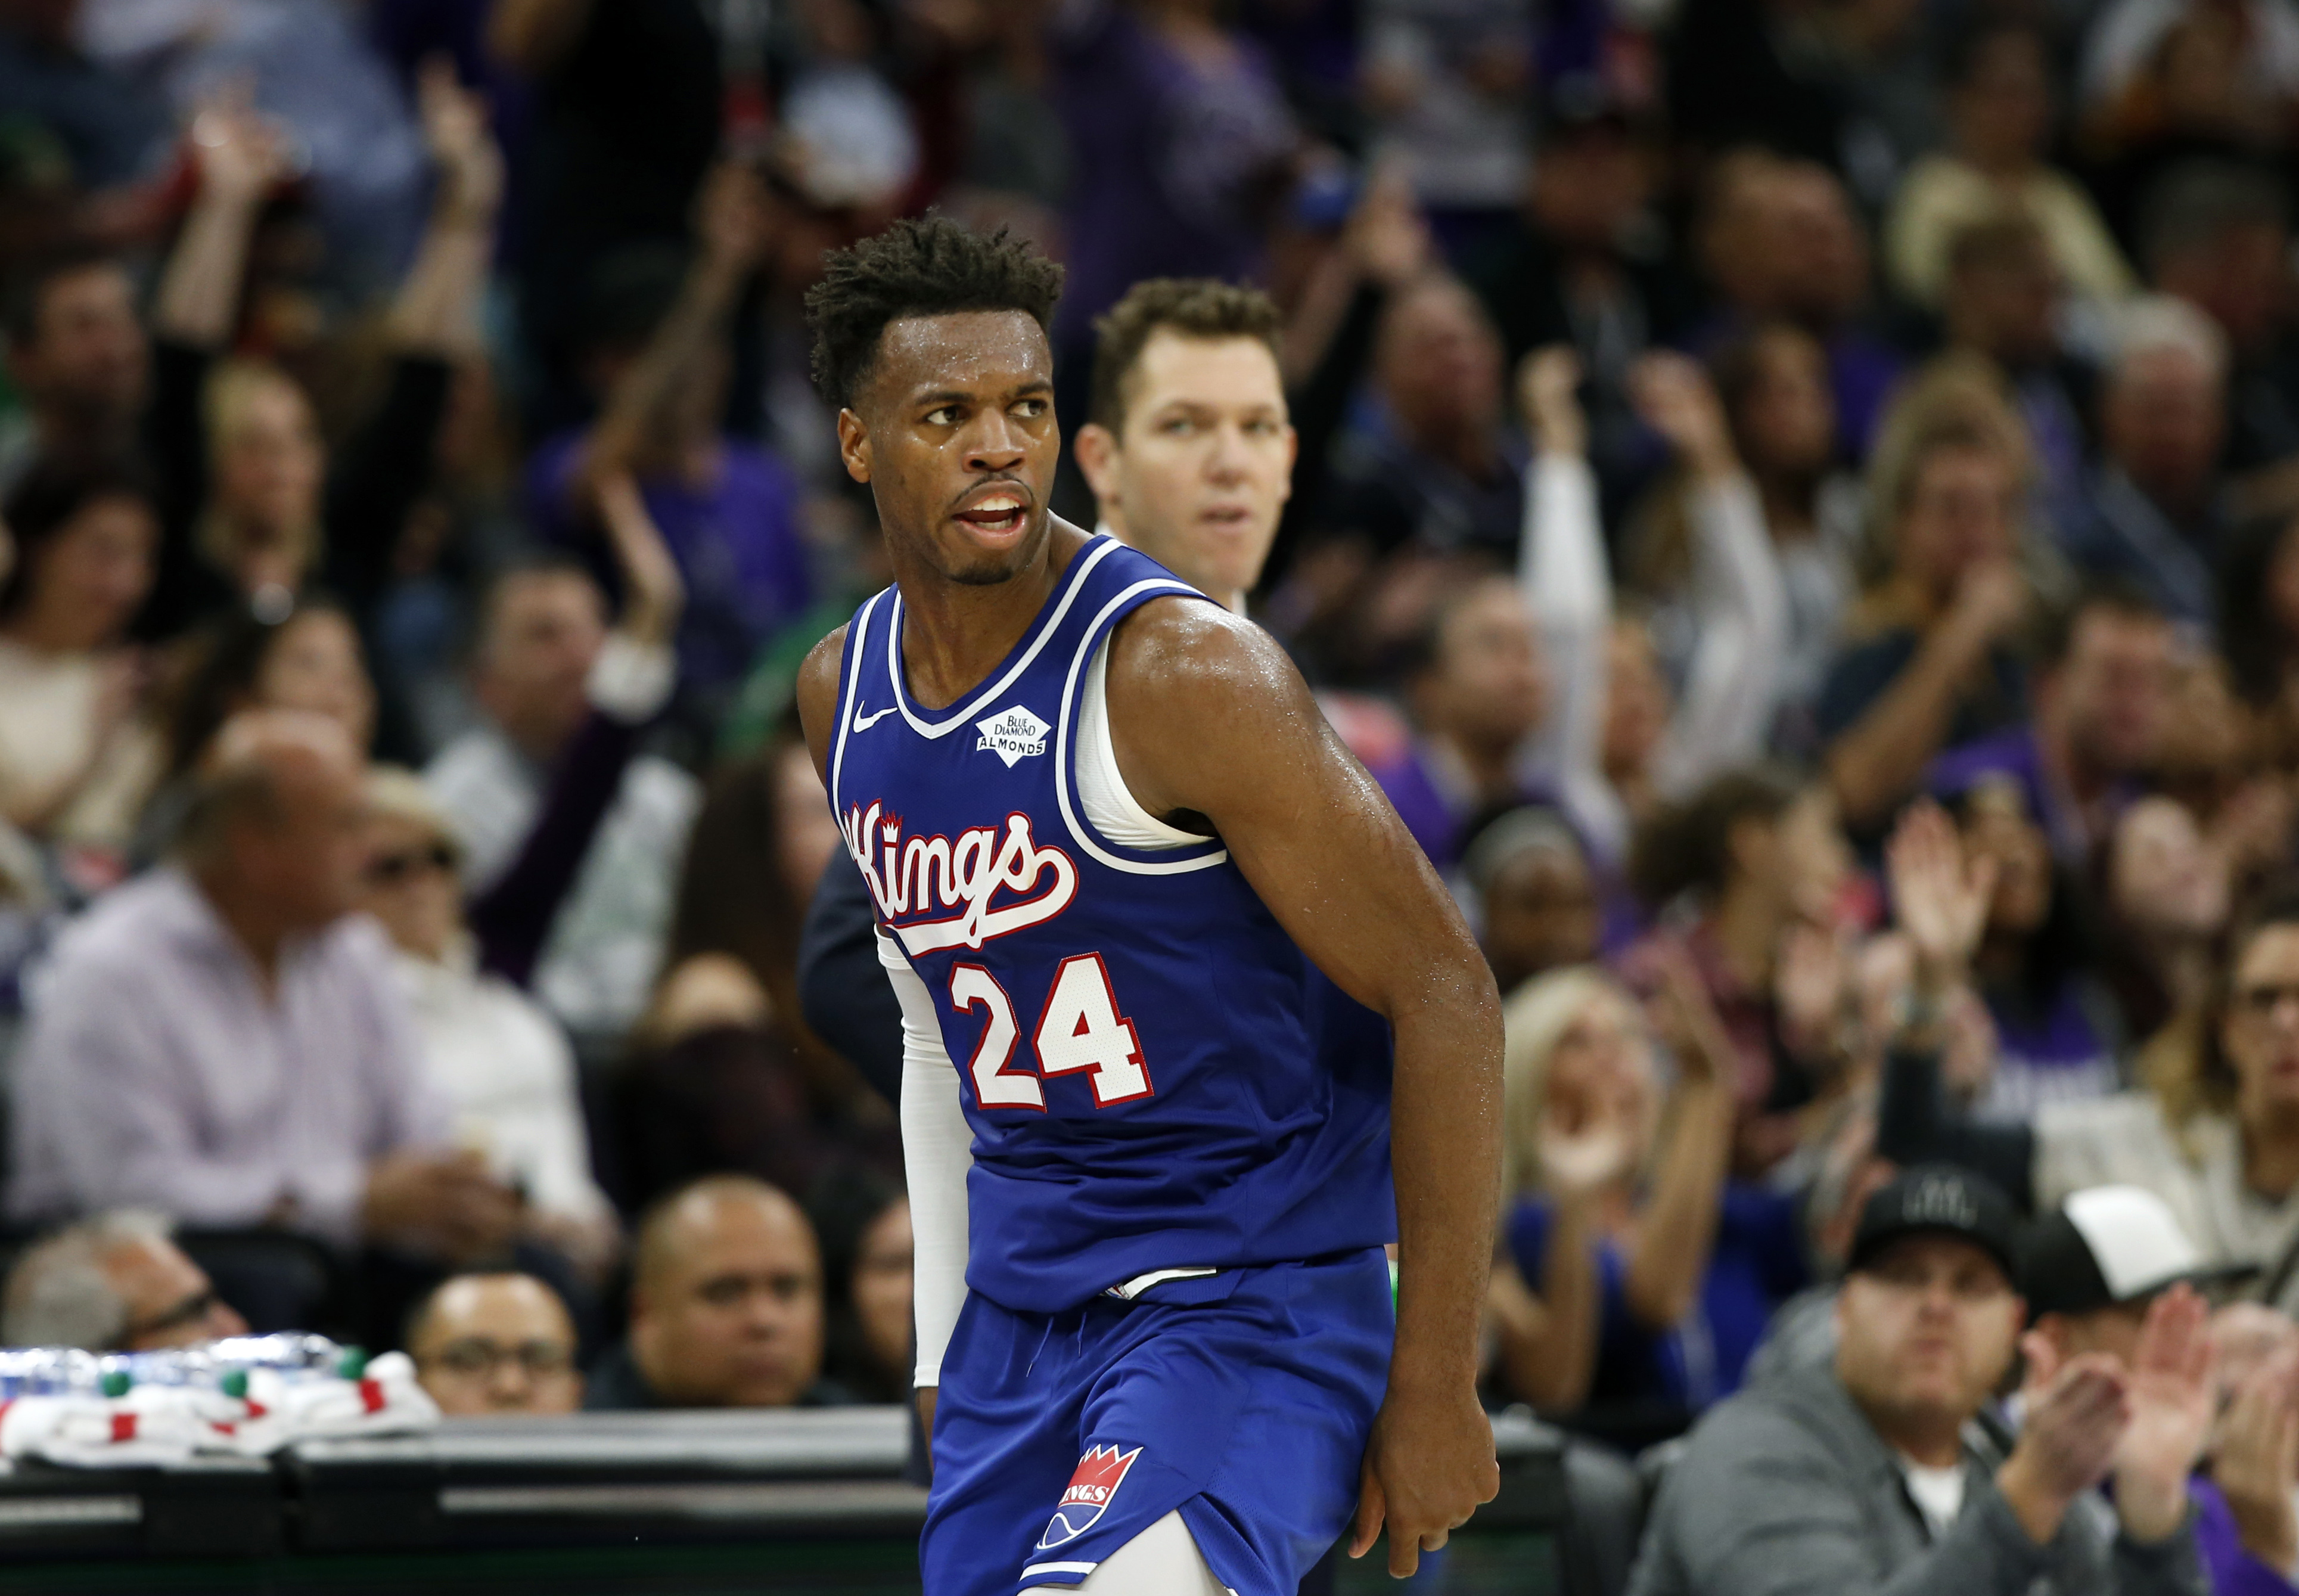 Hield fined $25,000 by NBA for kicking ball into stands